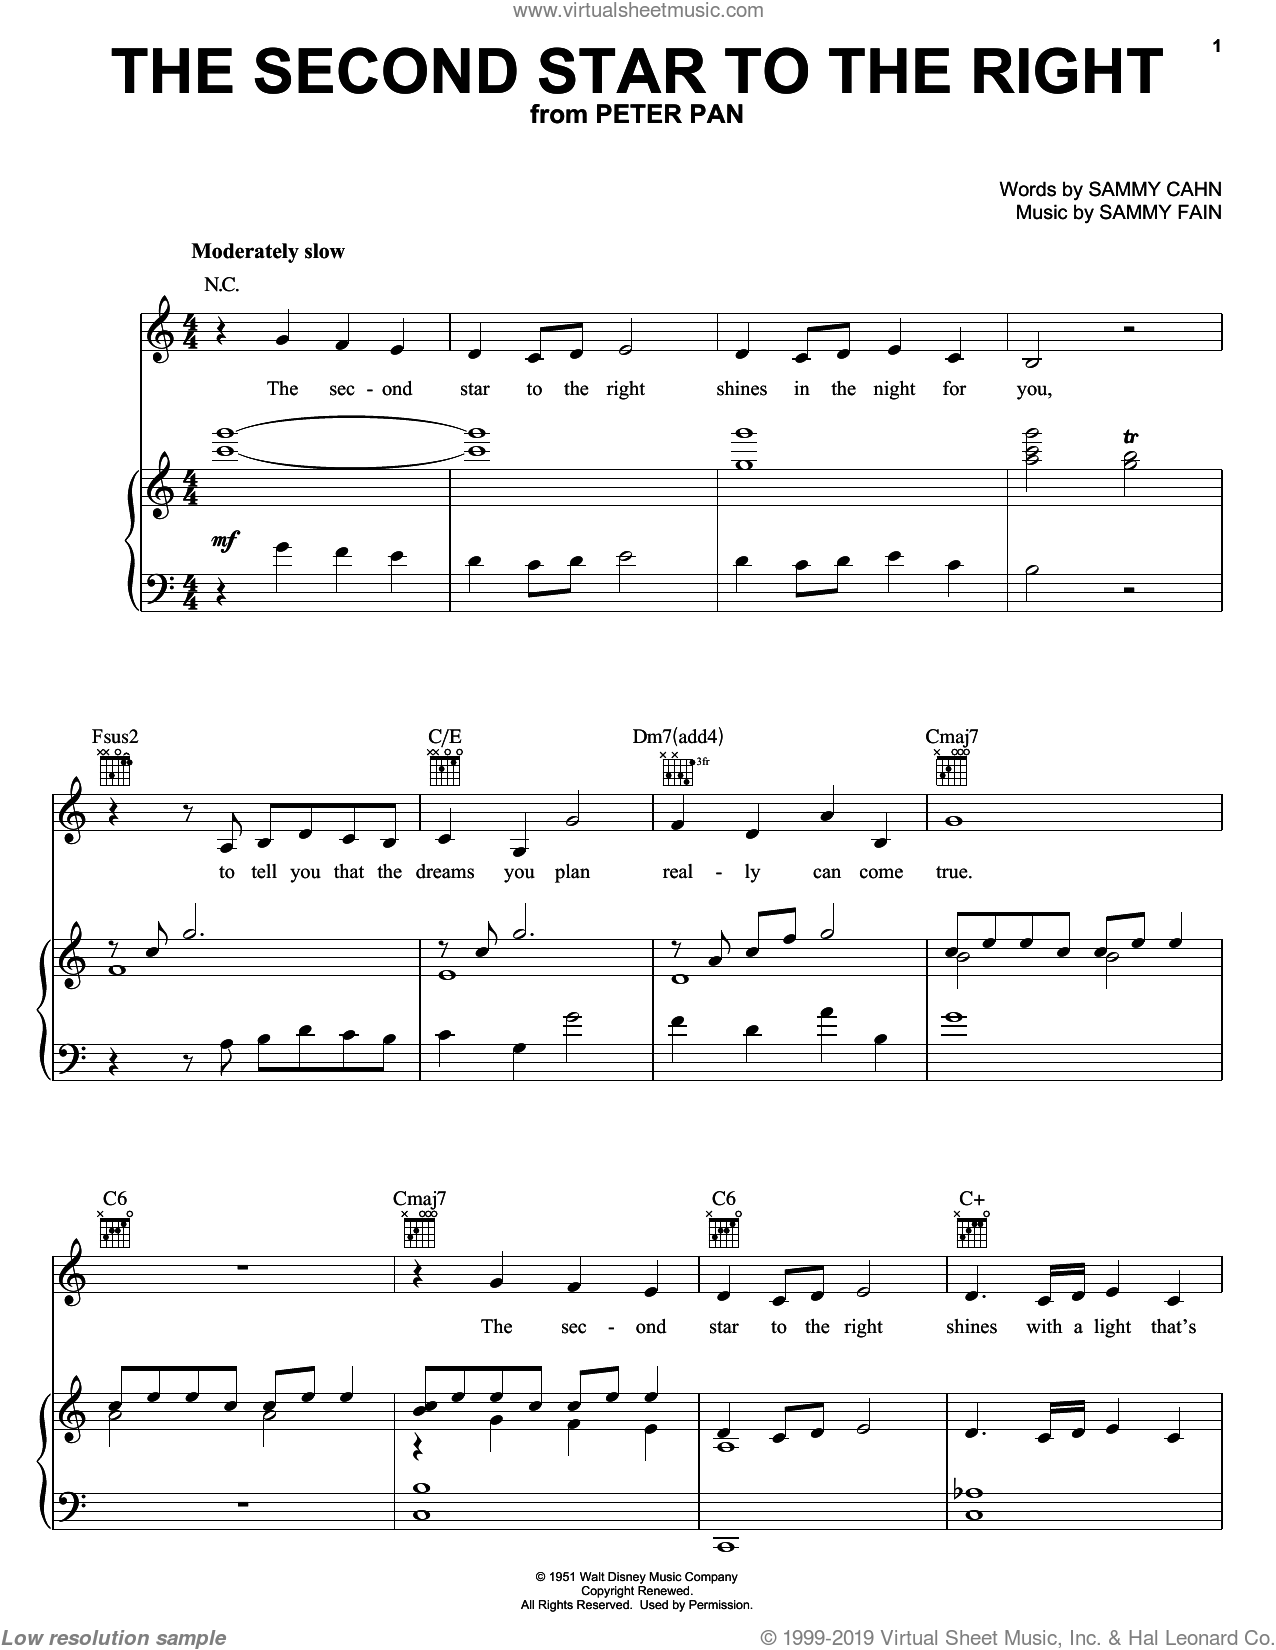 The Second Star To The Right sheet music for voice, piano or guitar by Sammy Cahn, Doris Day and Sammy Fain, intermediate skill level